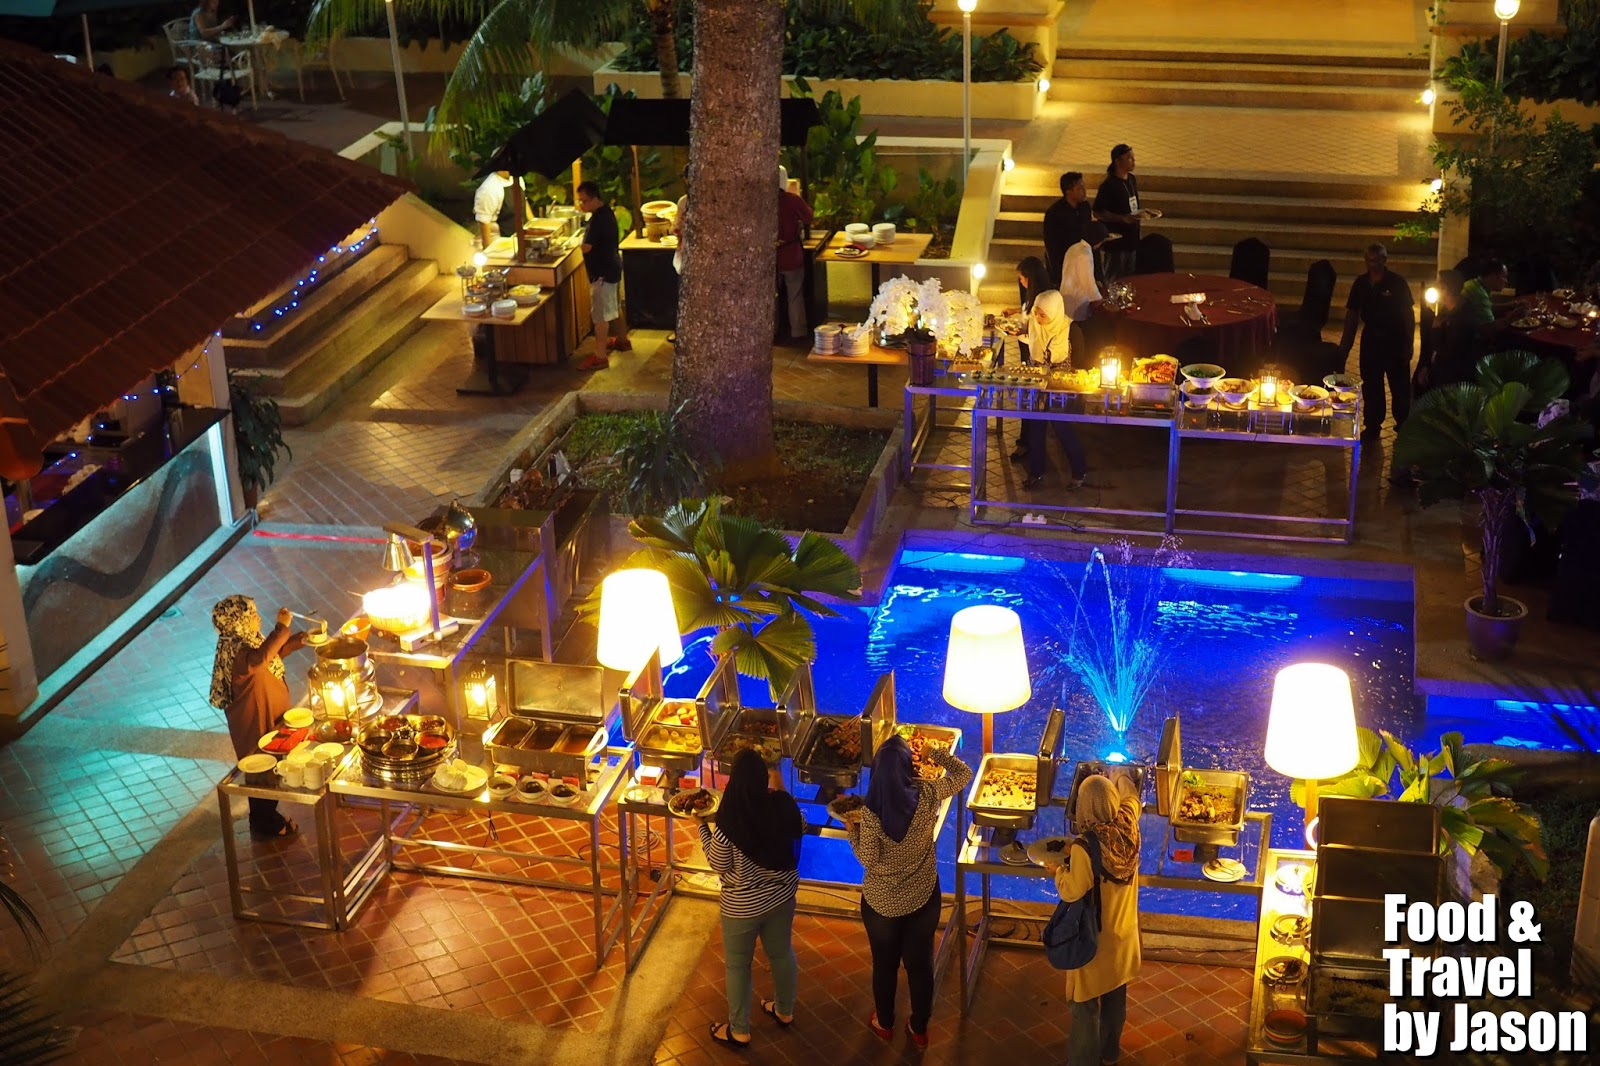 FOOD & Travel: Al fresco BBQ buffet @ Palm Garden Hotel, IOI Resort ...